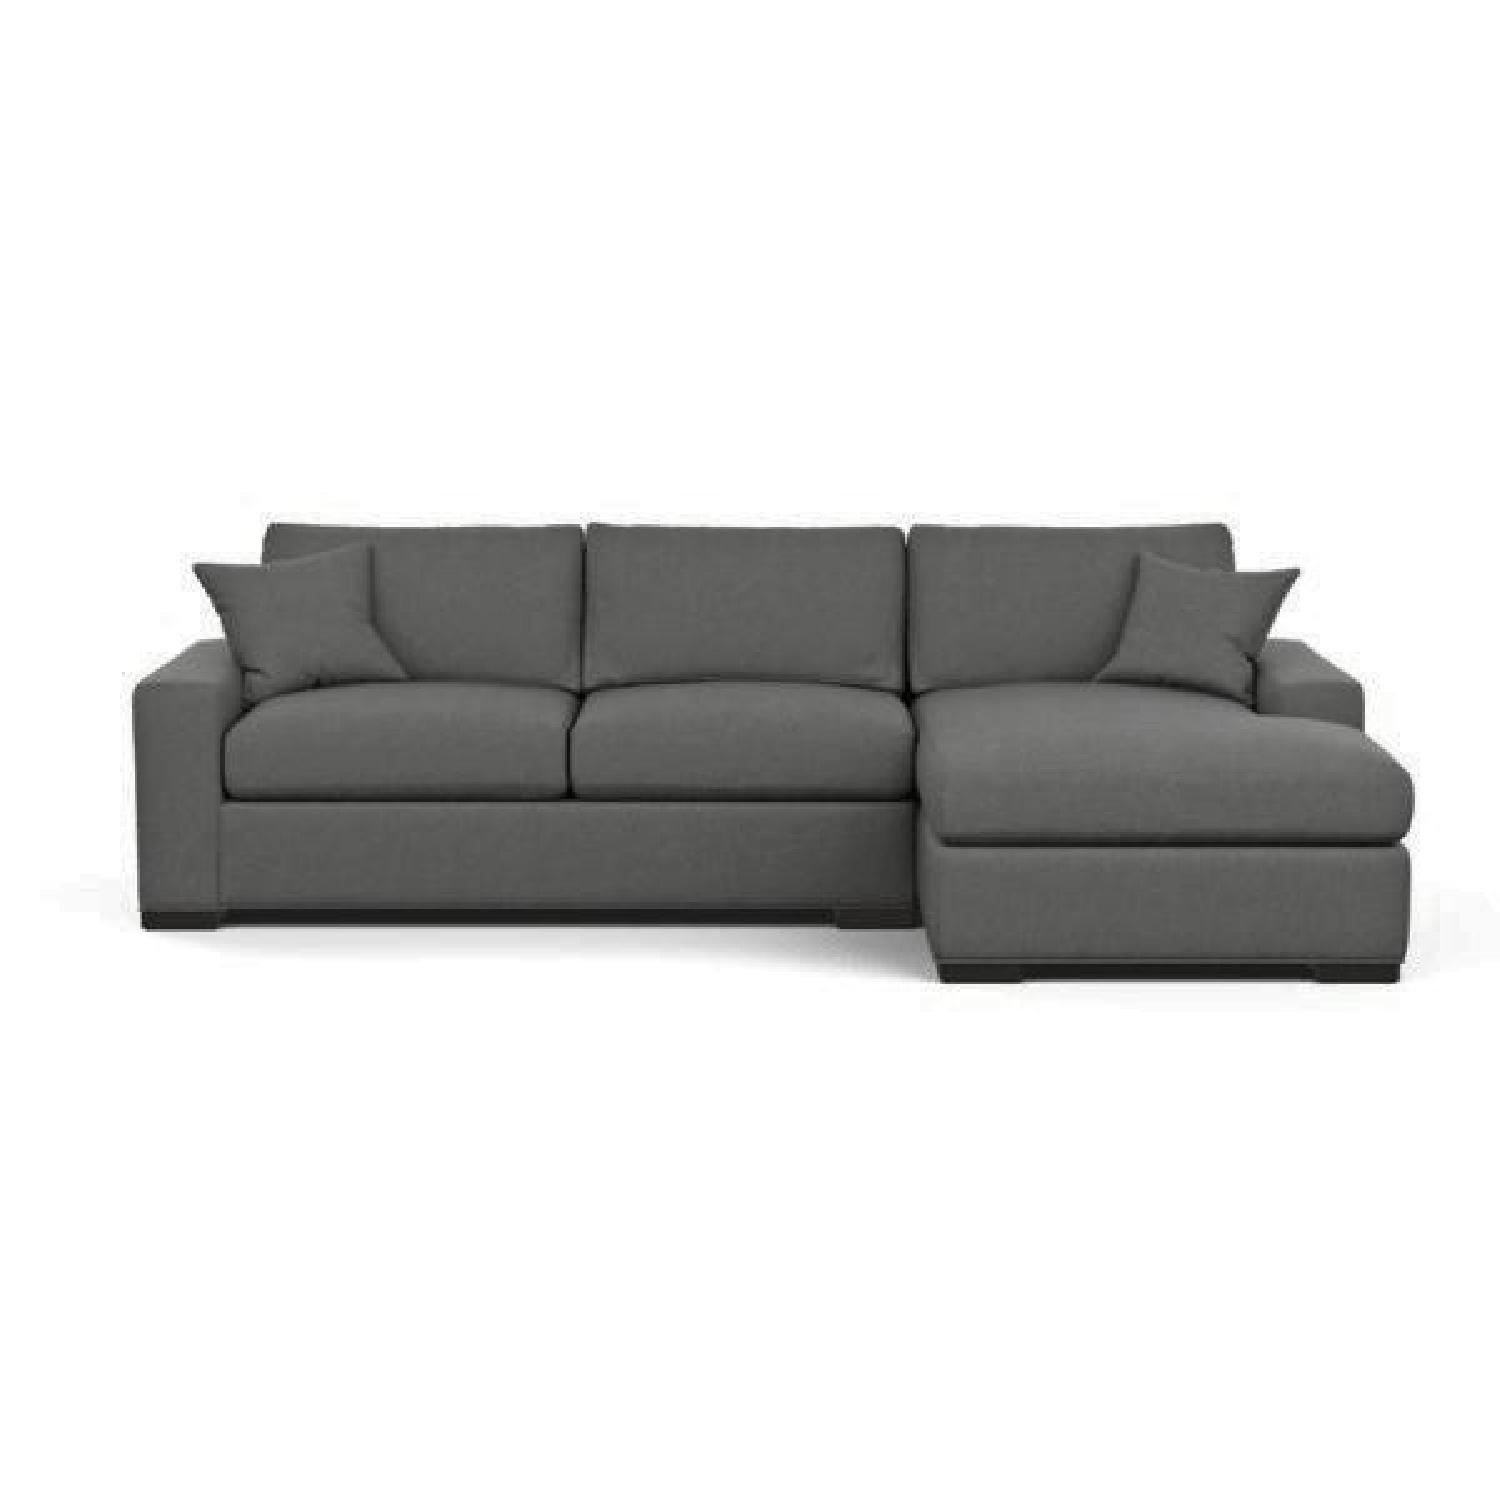 Ethan Allen Conway Grey 2-Piece Sectional Sofa - image-0